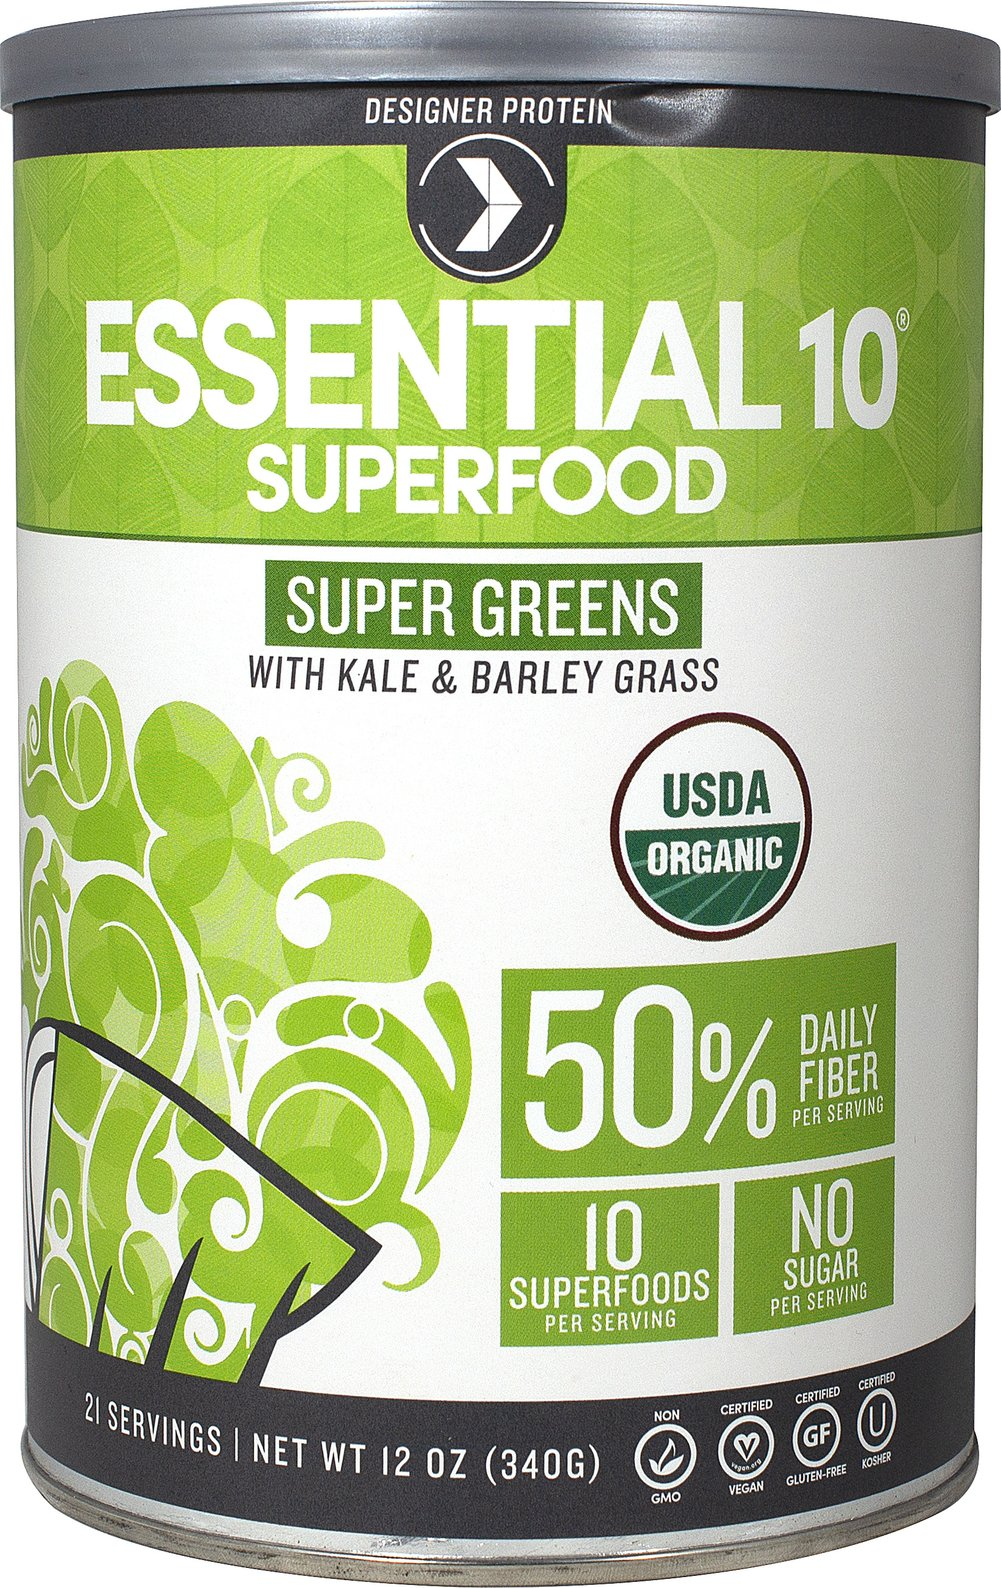 Essential 10 Superfood Super Greens Thumbnail Alternate Bottle View